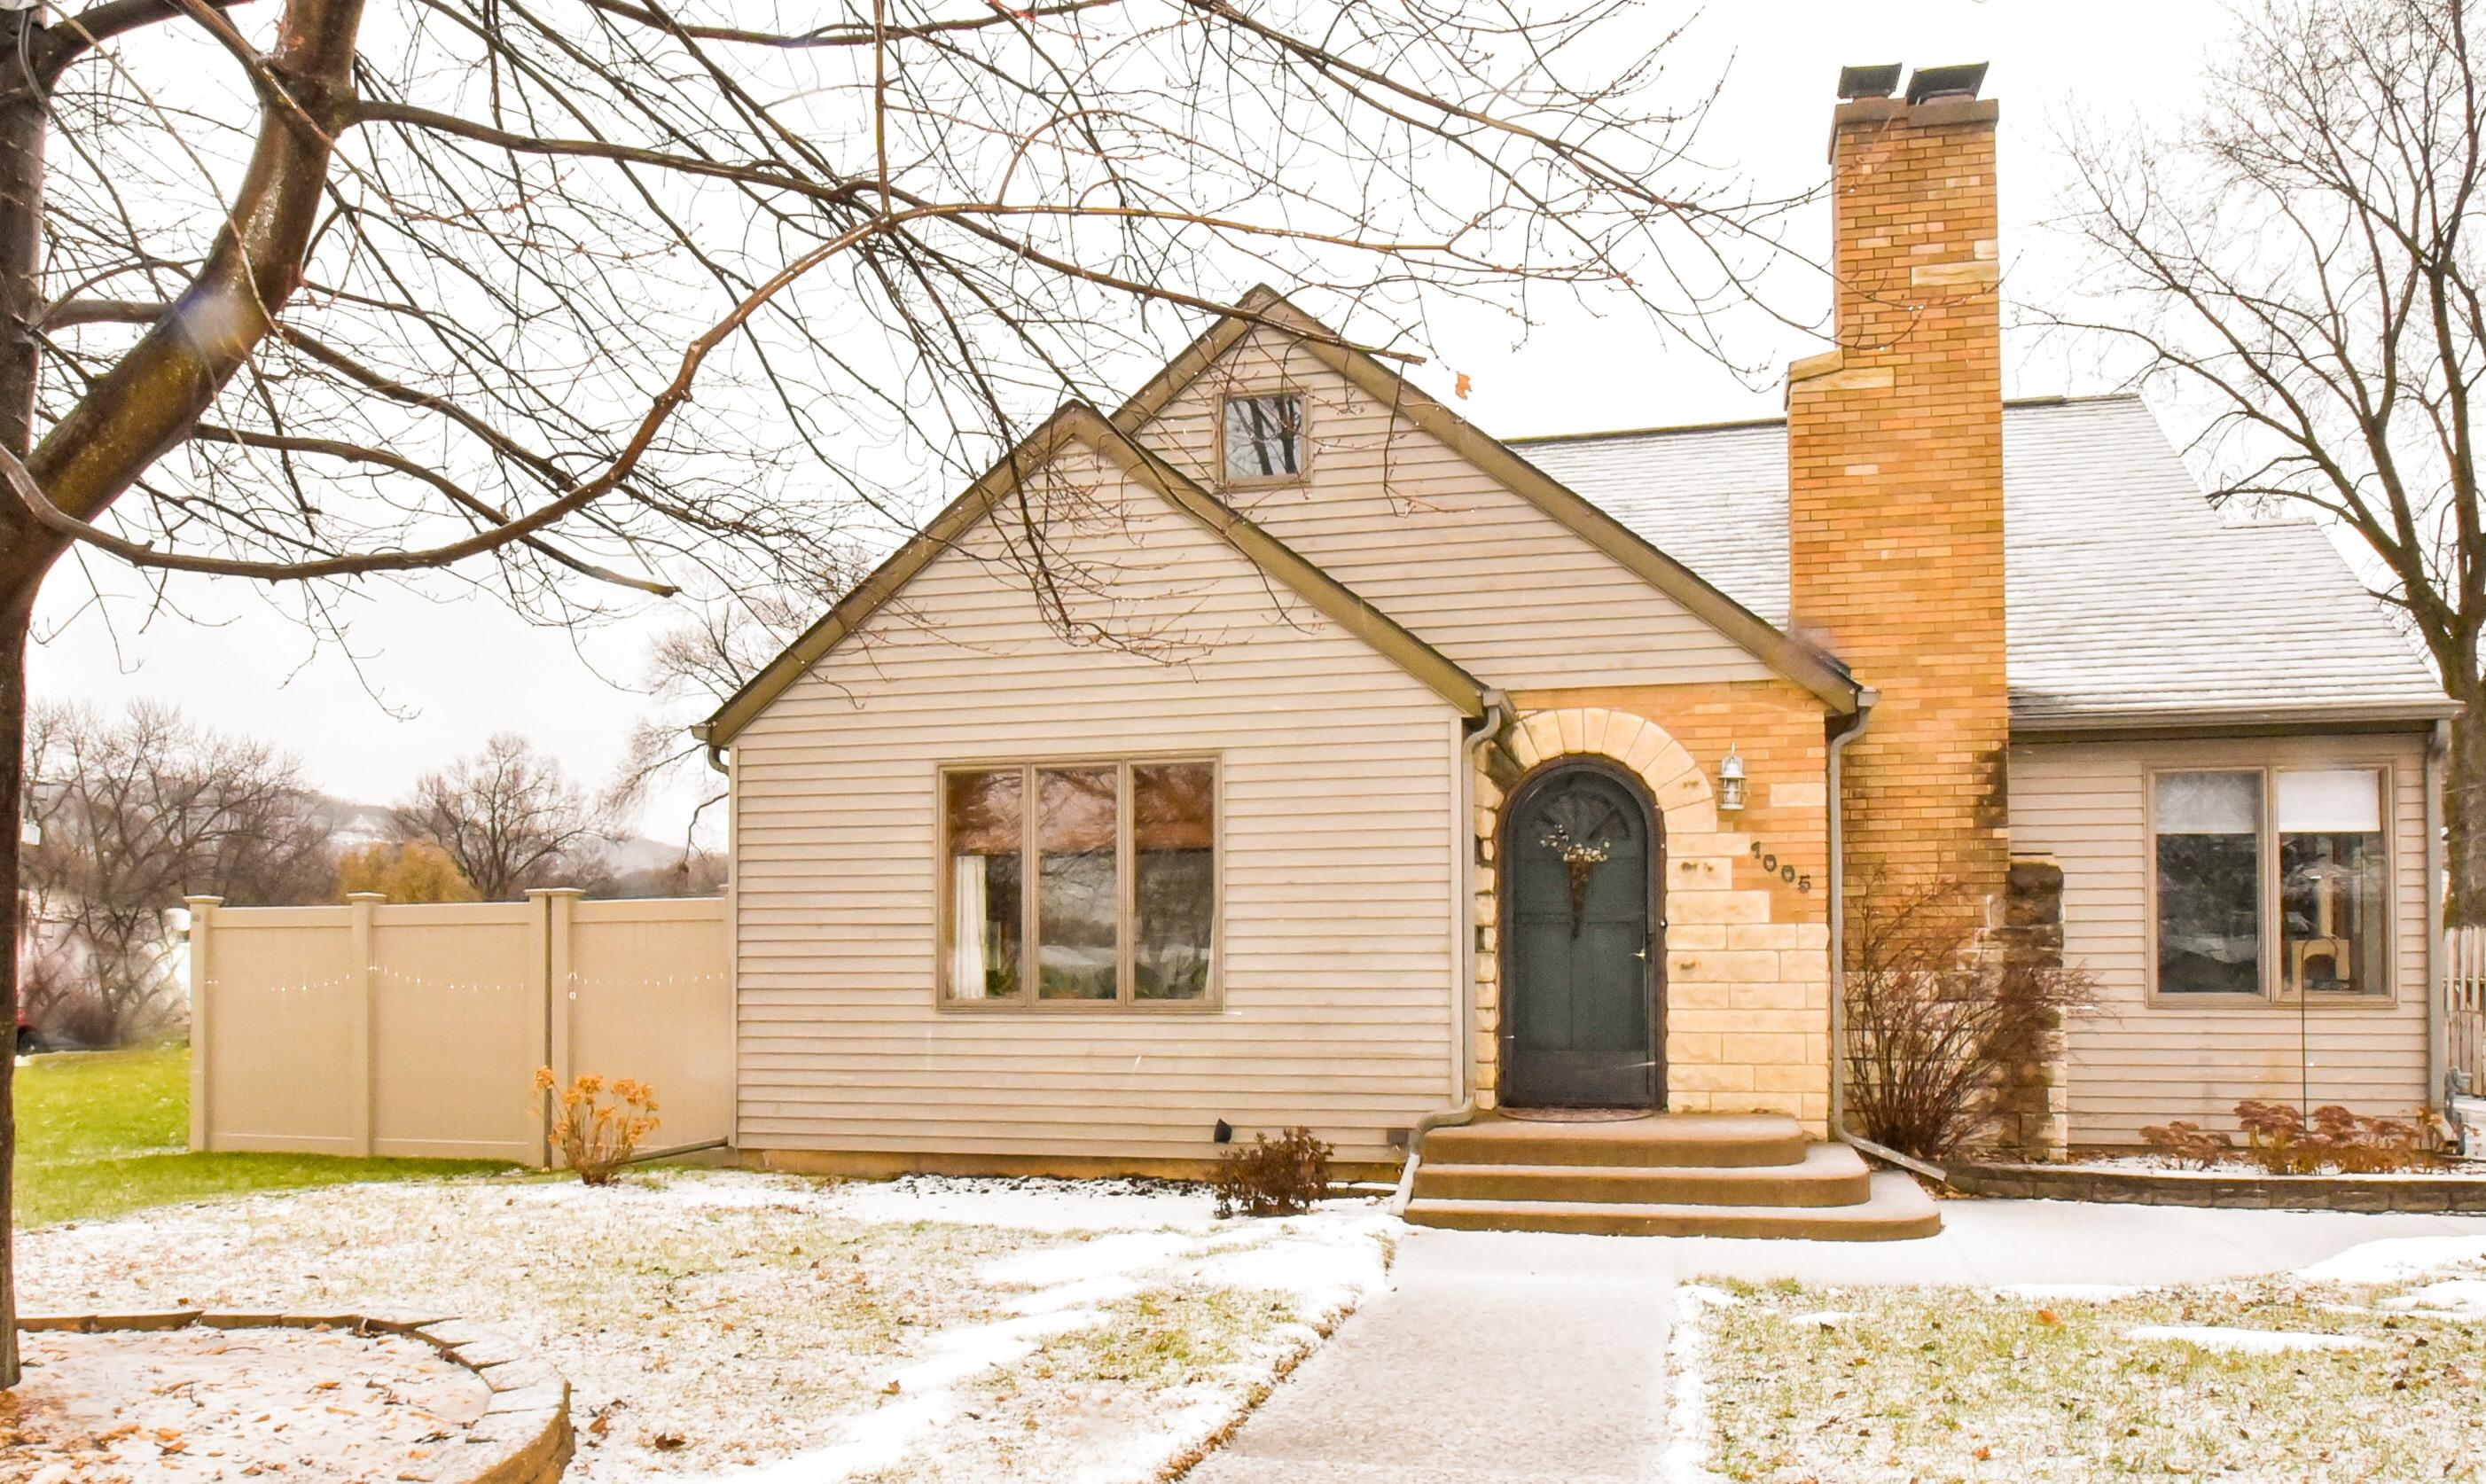 1005 Losey Blvd S<br /> La Crosse,La Crosse,54601,3 Bedrooms Bedrooms,2 BathroomsBathrooms,Two-family,Losey Blvd S,1618357